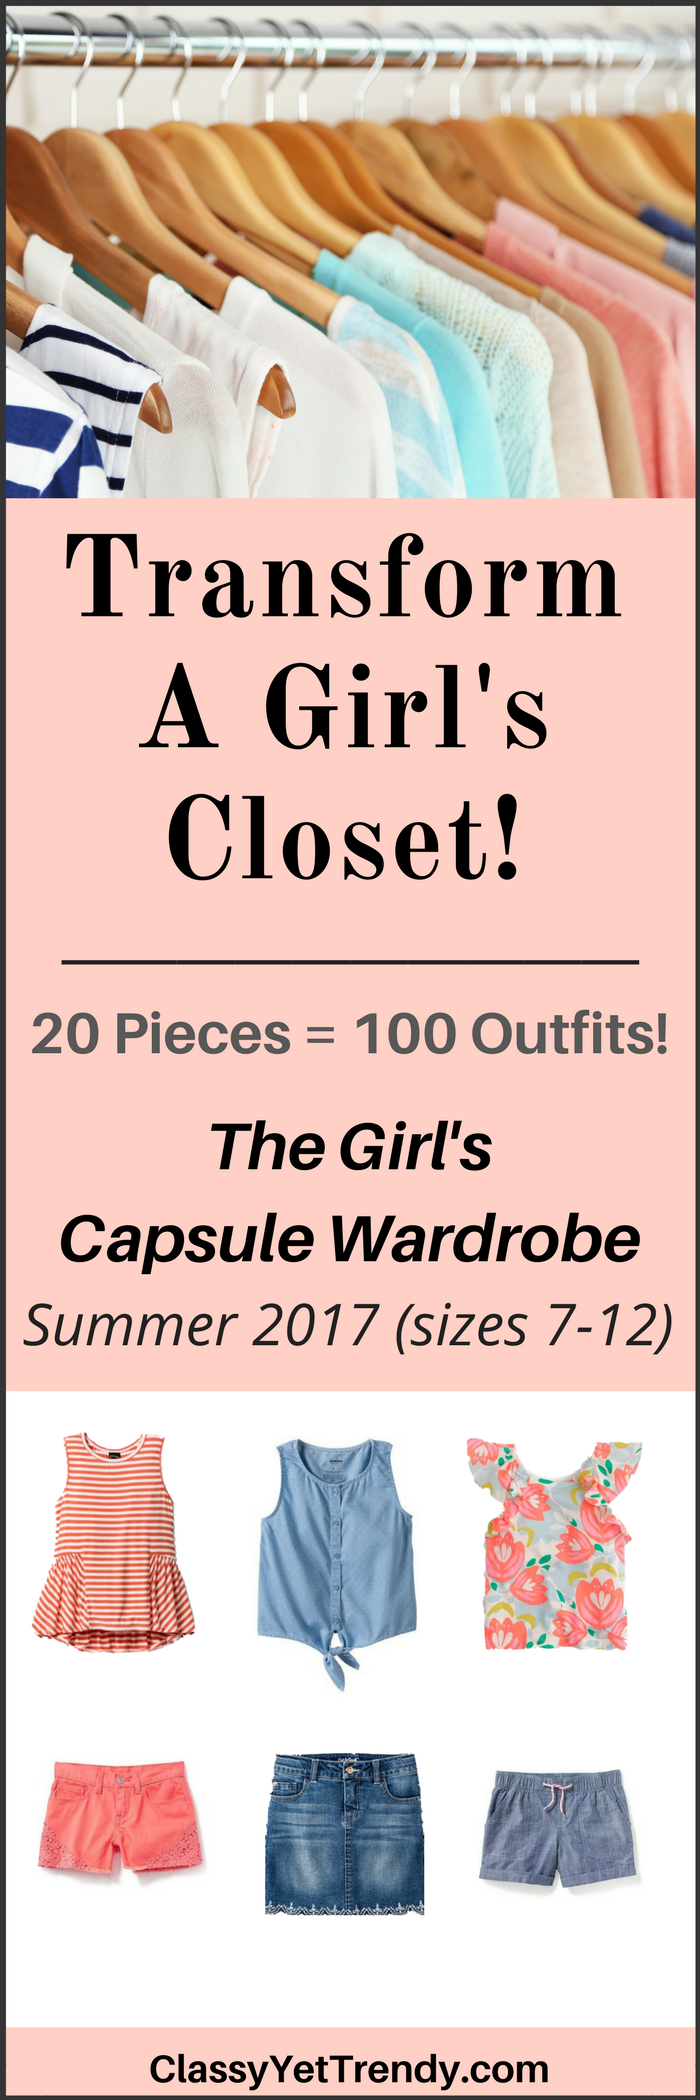 The Girls Summer 2017 Capsule Wardrobe e-book